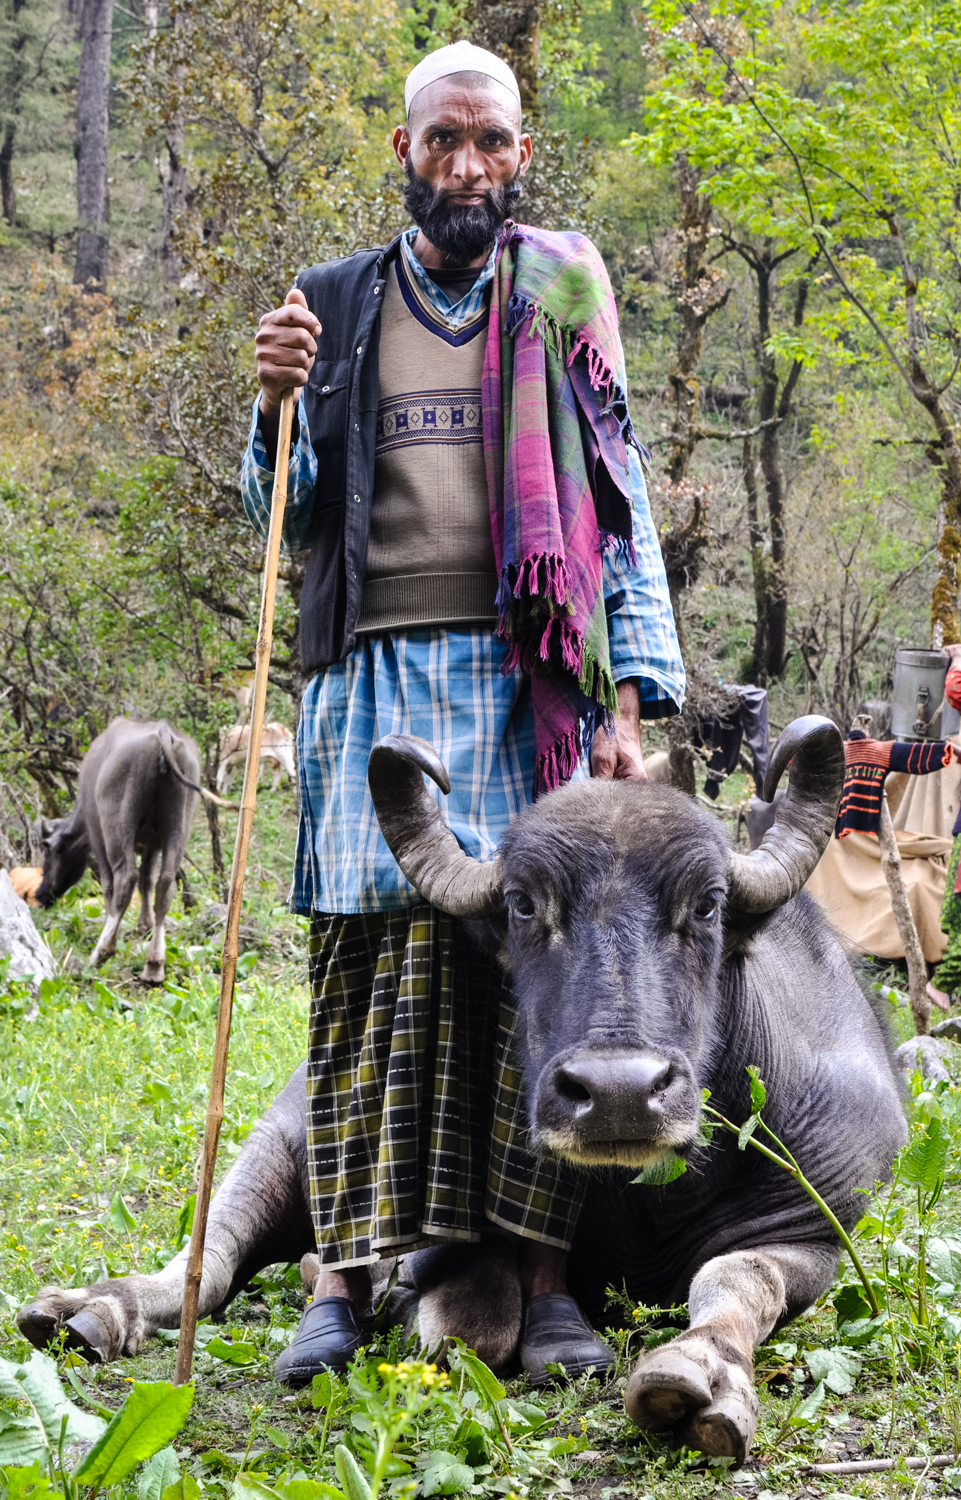 Dhumman, the father of the family, with his favorite buffalo. This was the first summer in his entire life that he would not spend at his family's ancestral meadows. He was at once accepting and resentful, and had deep concerns about what this meant for the fate of the migration in future years.